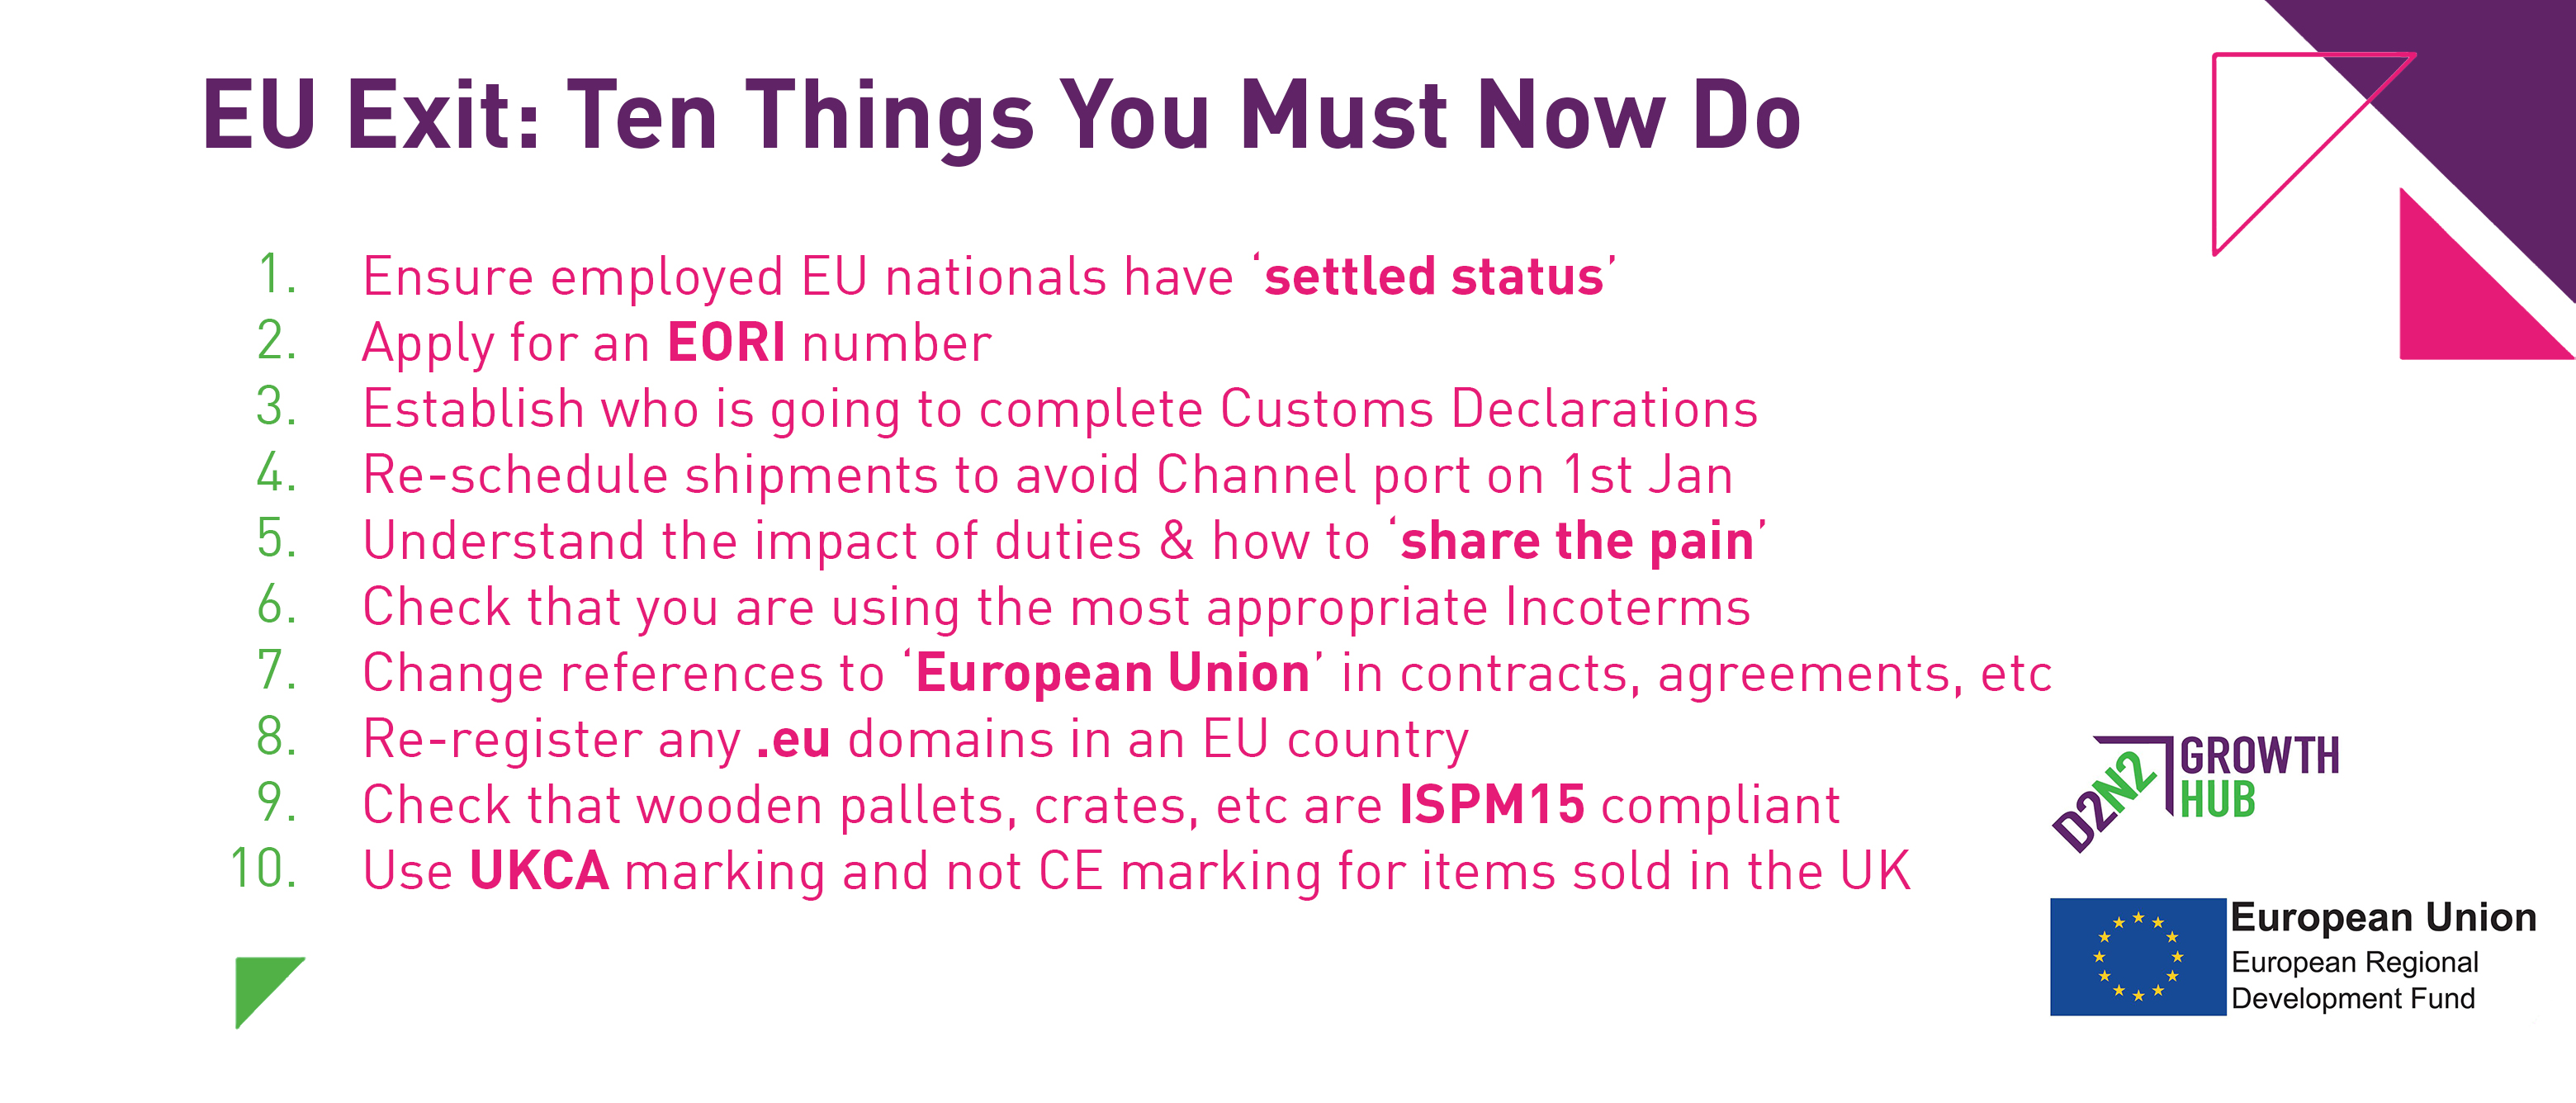 Want to prepare your business against the upcoming EU Exit?